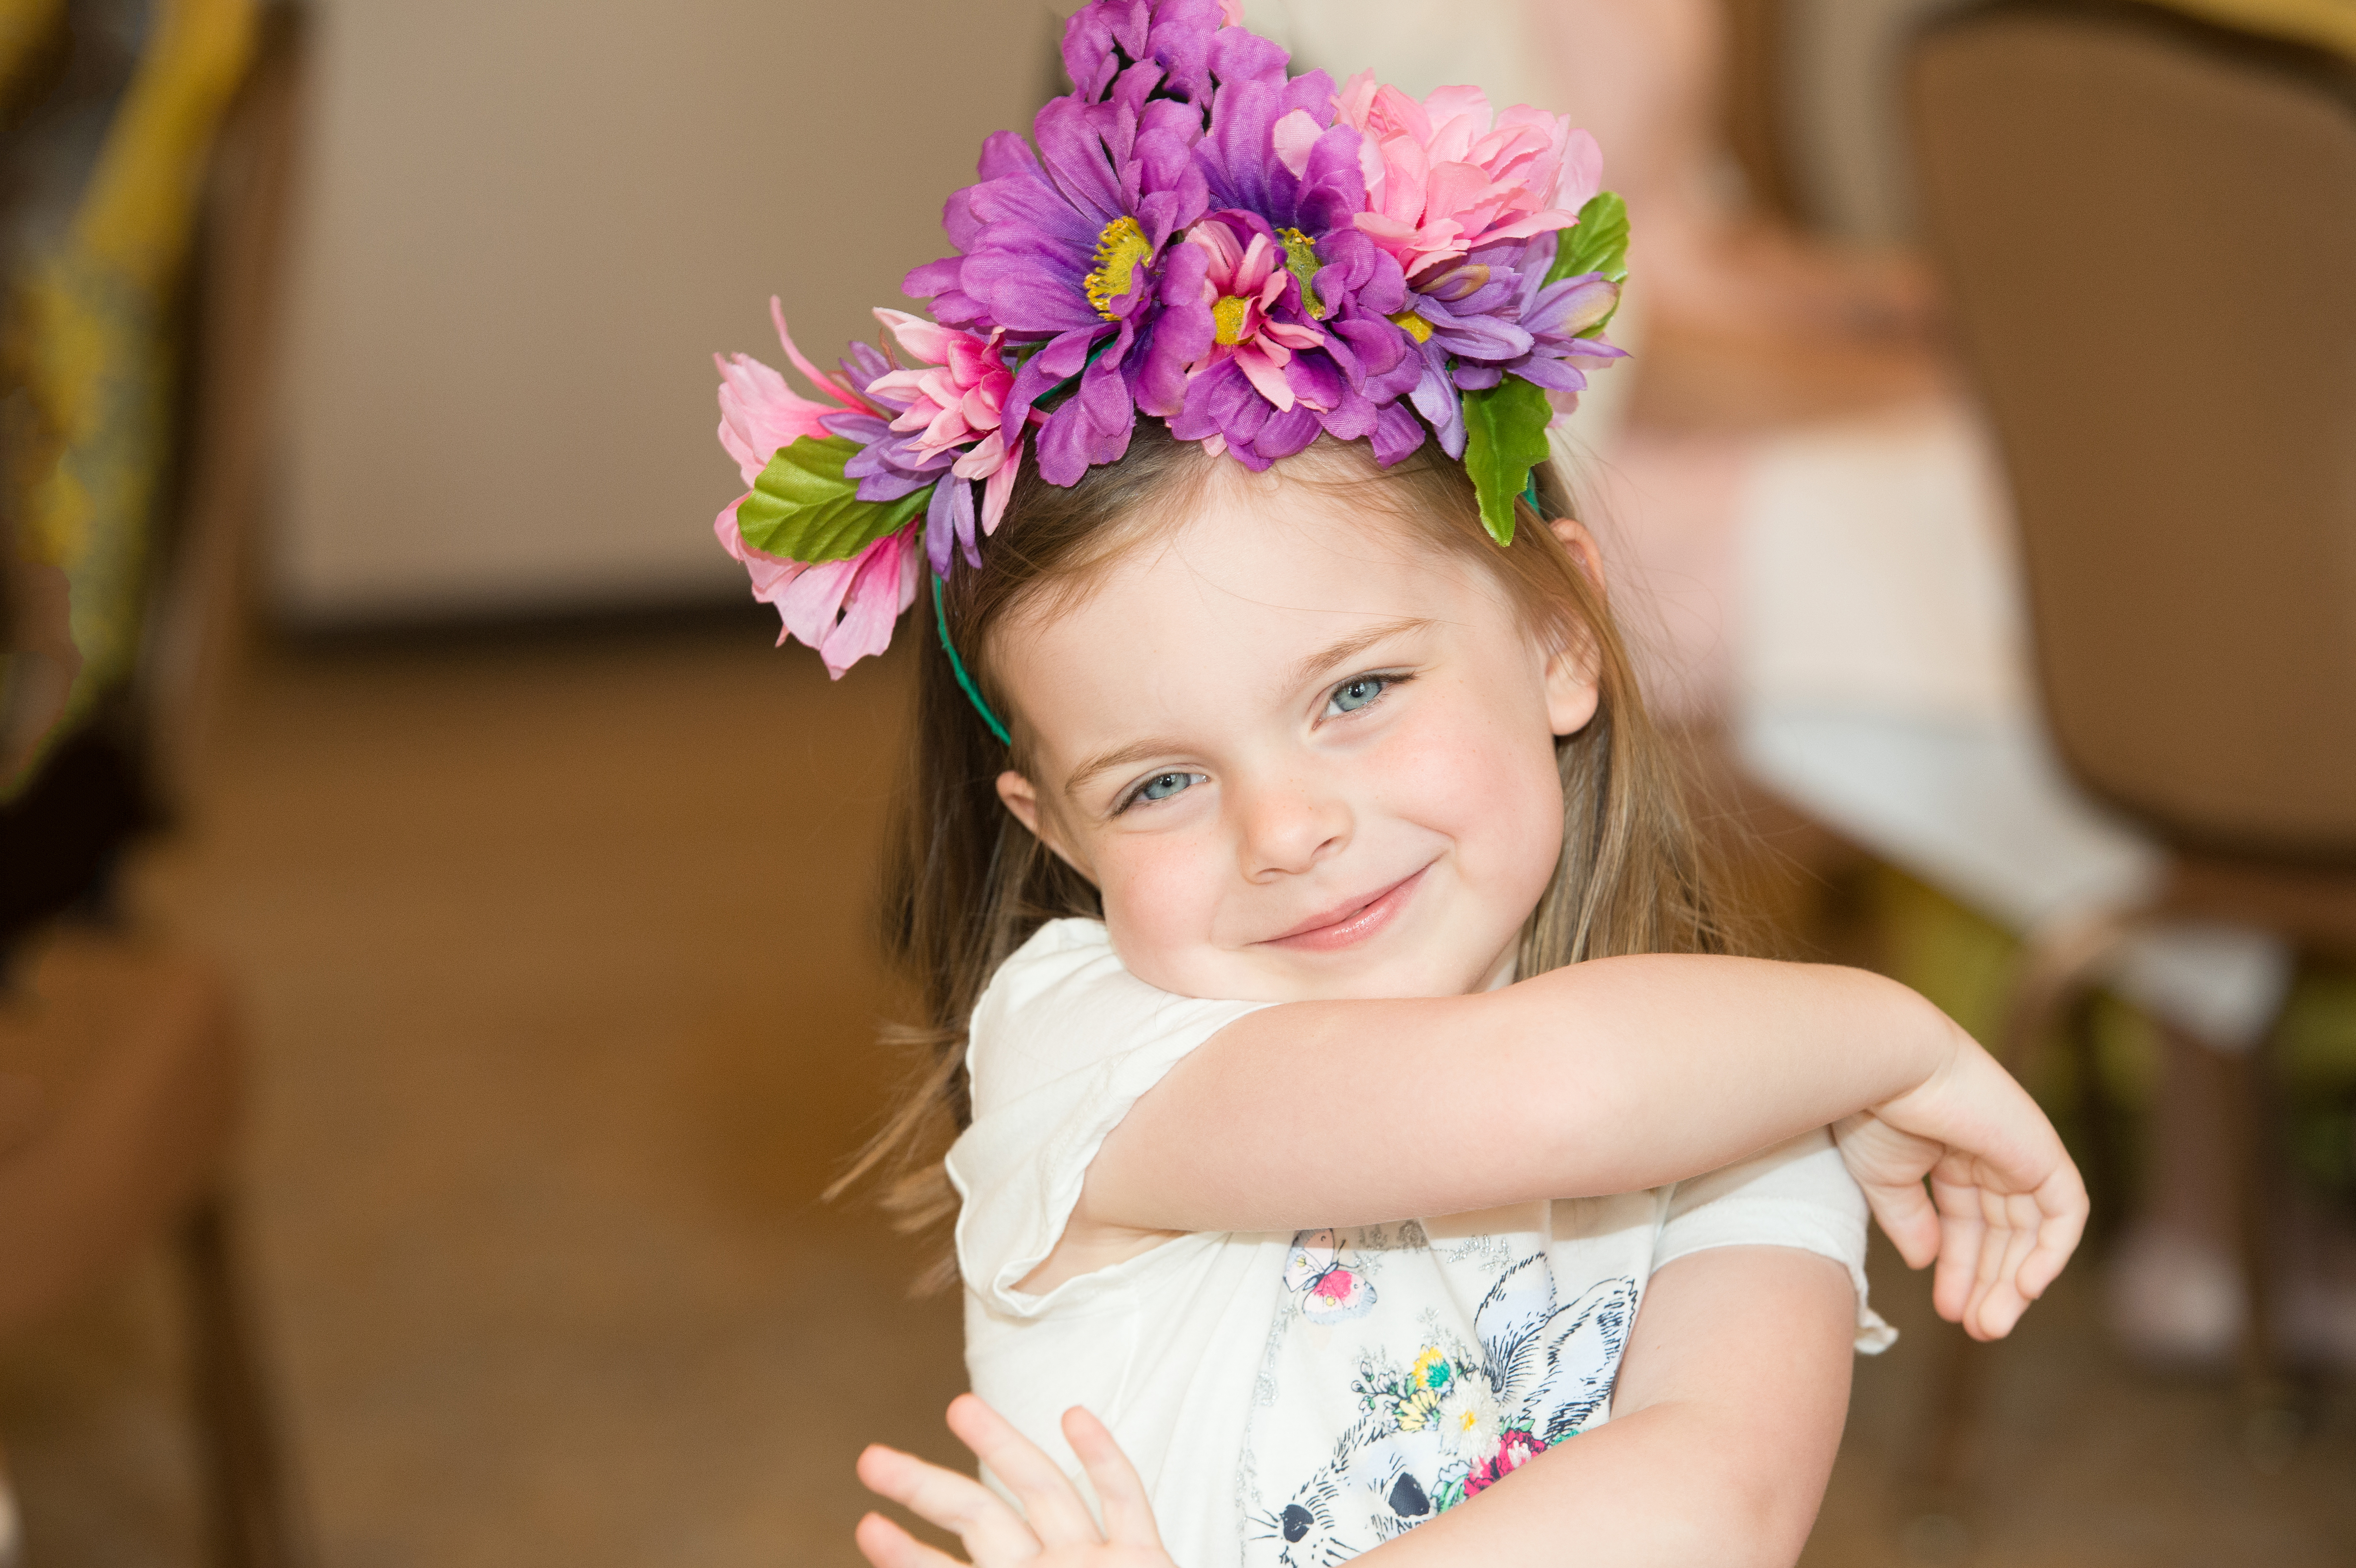 fb6708203f A little girl wearing flower crown smiles for the camera.